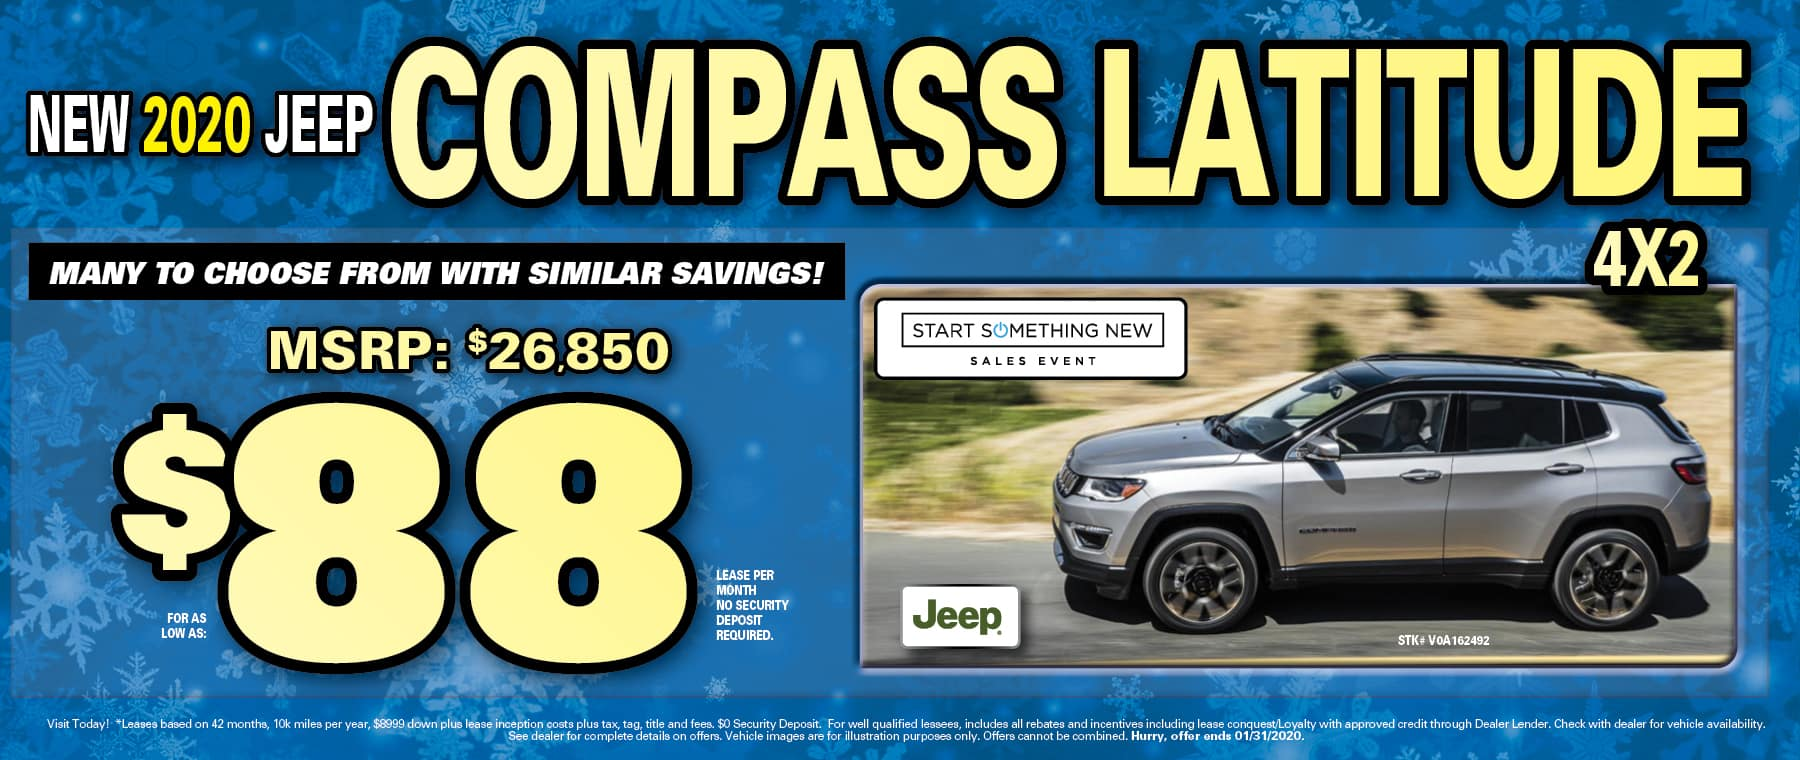 Compass Lease $88